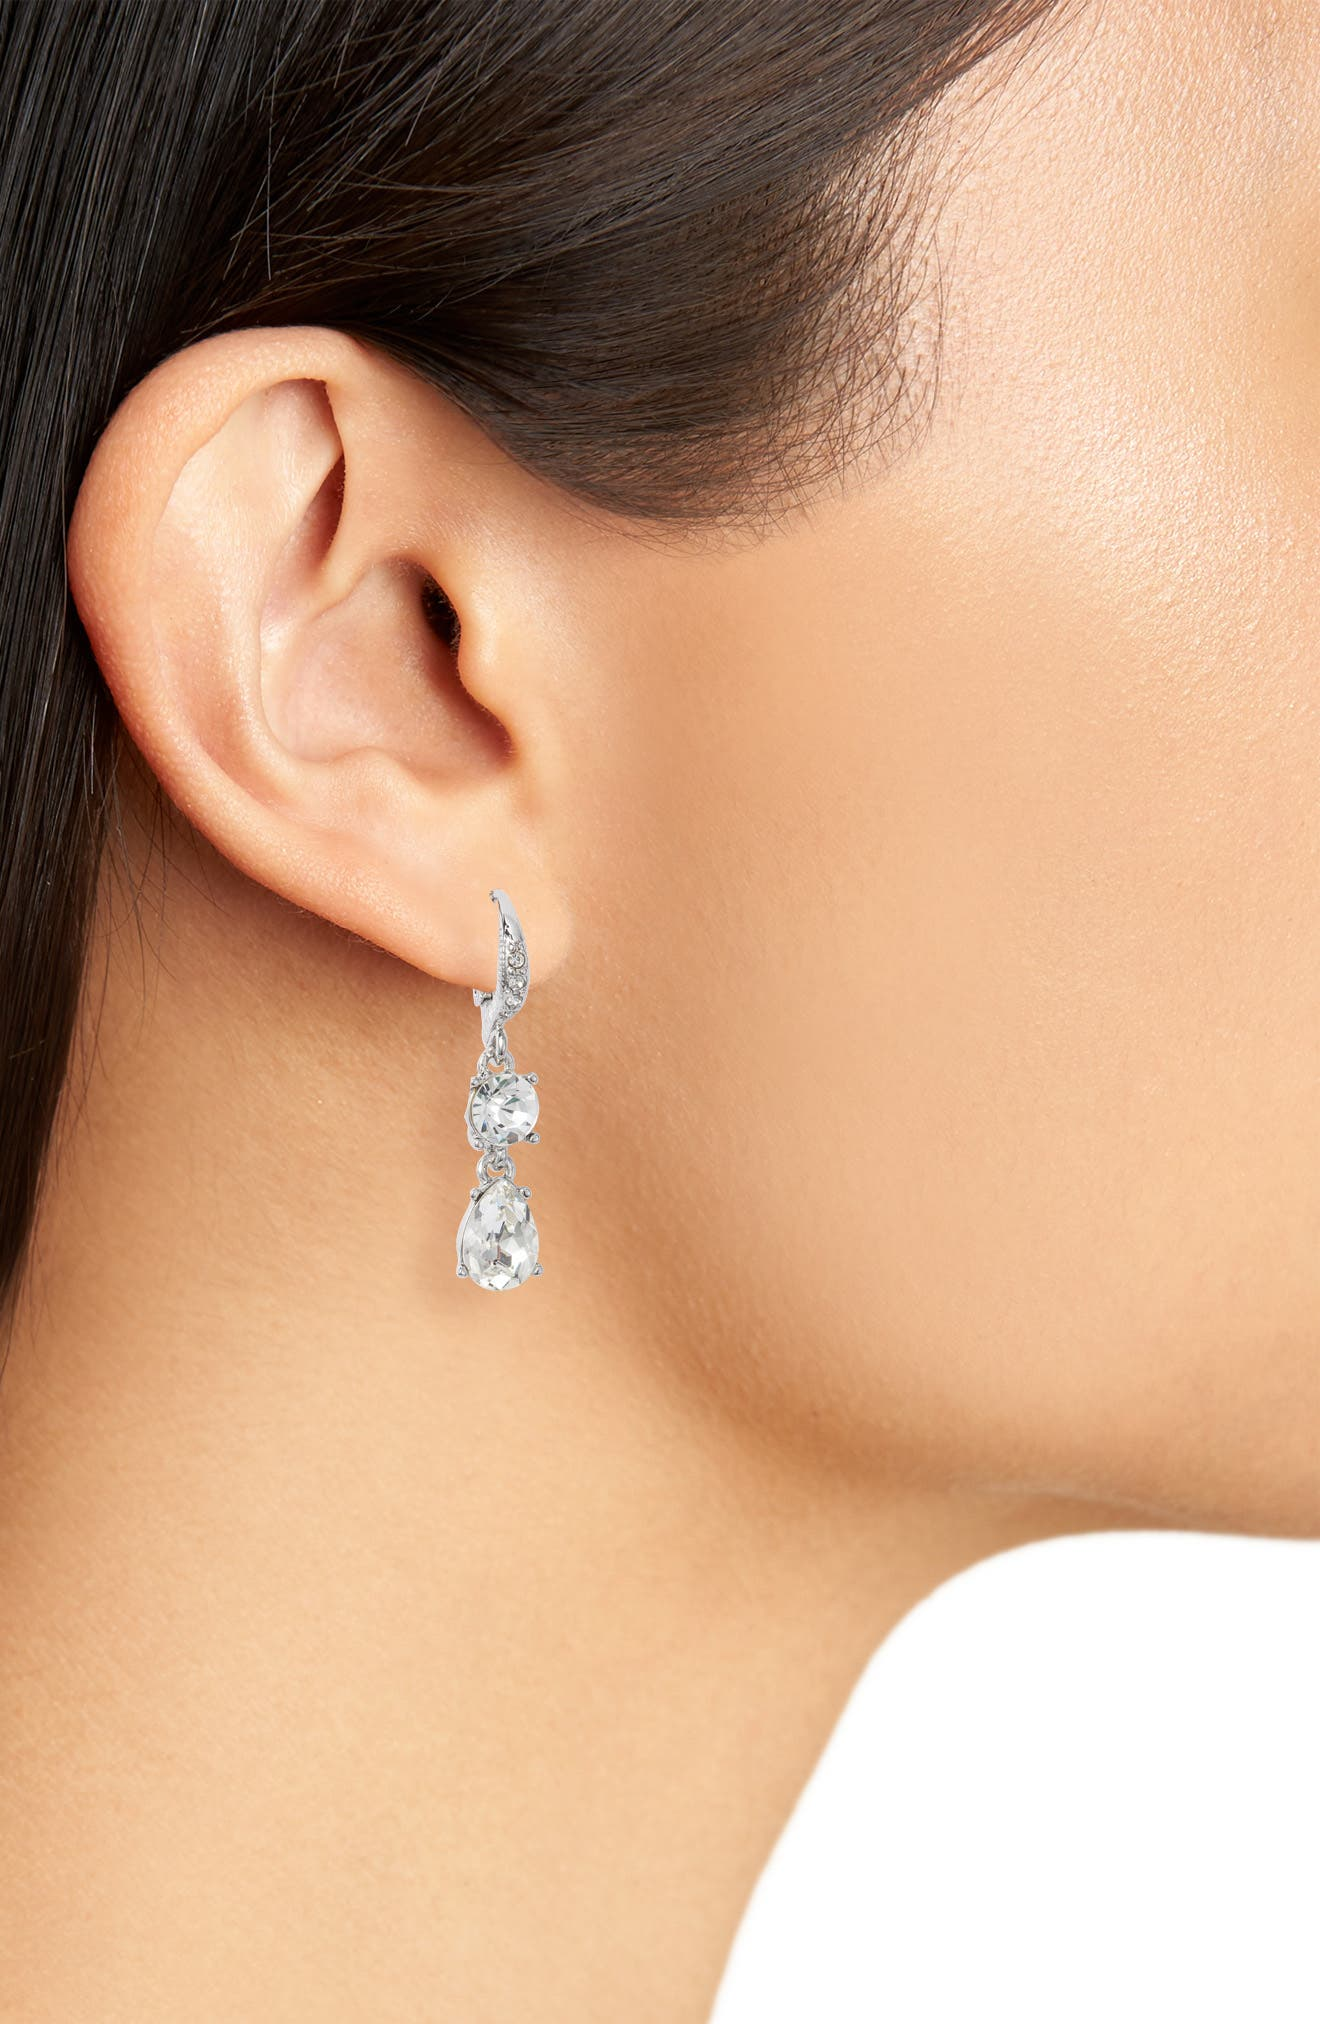 Small Crystal Drop Earrings,                             Alternate thumbnail 2, color,                             SILVER